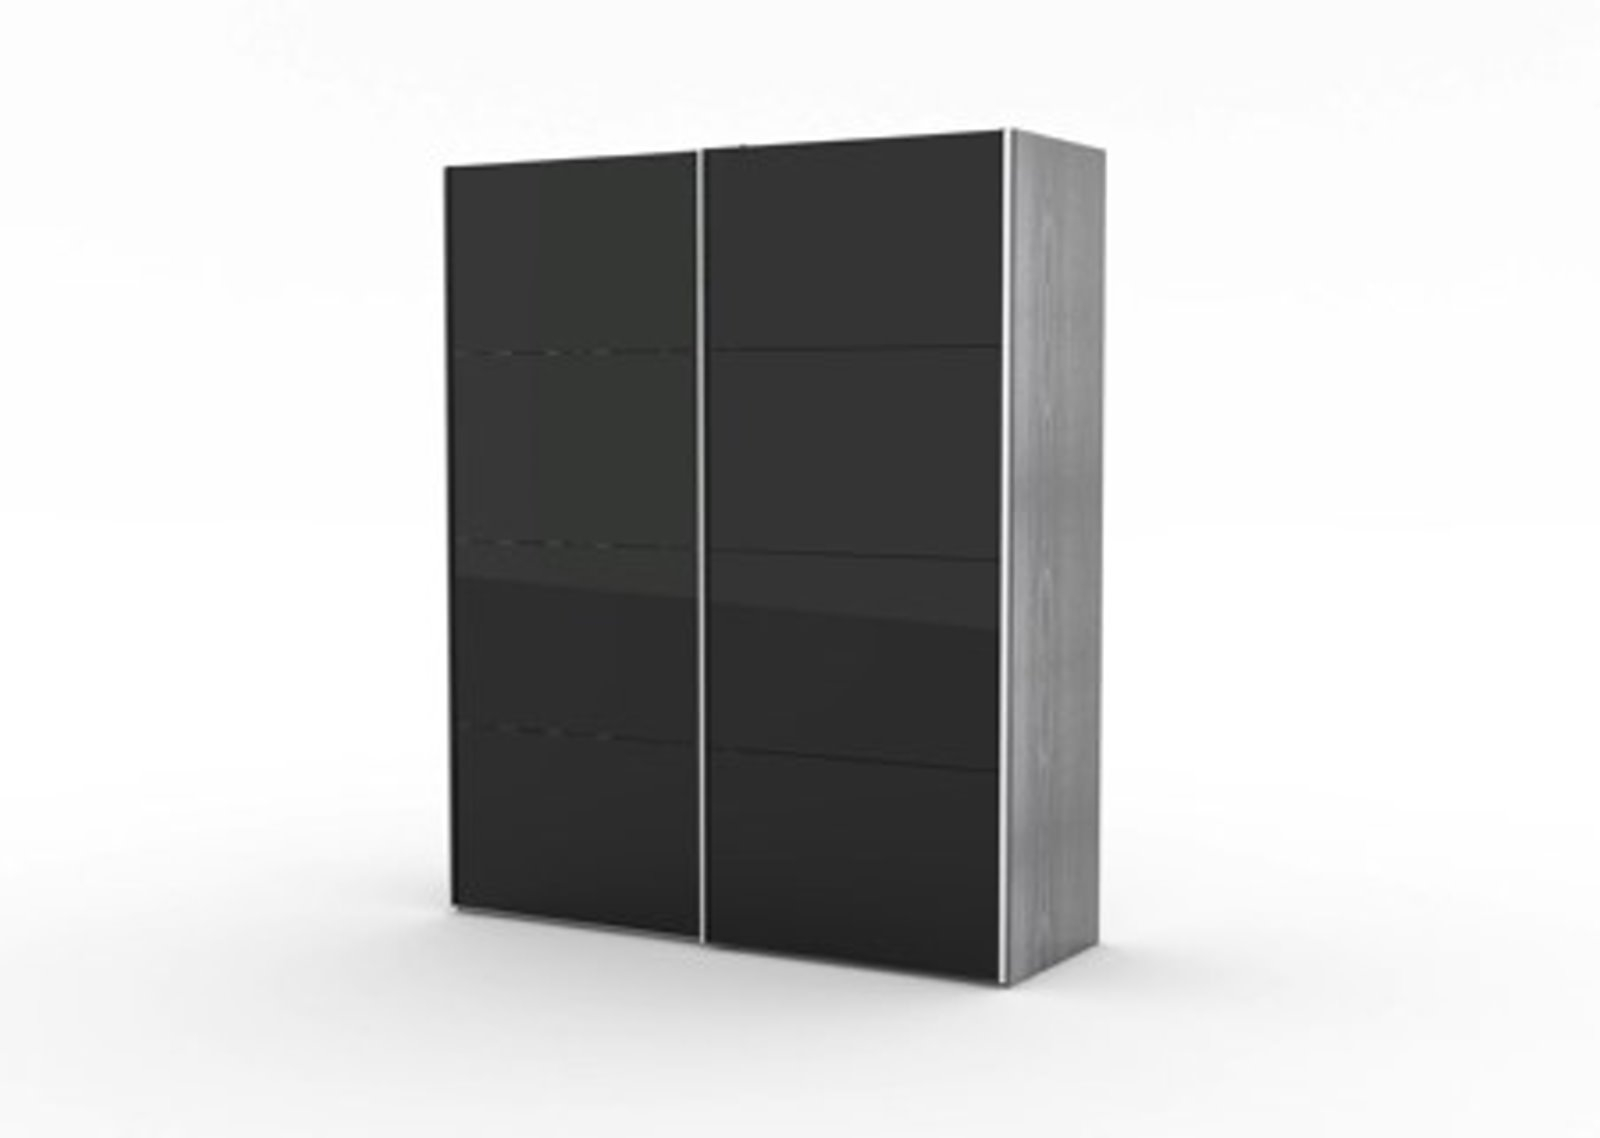 2 t riger kleiderschrank infiniti esche dekor schwarz schwarz hochglanz ebay. Black Bedroom Furniture Sets. Home Design Ideas